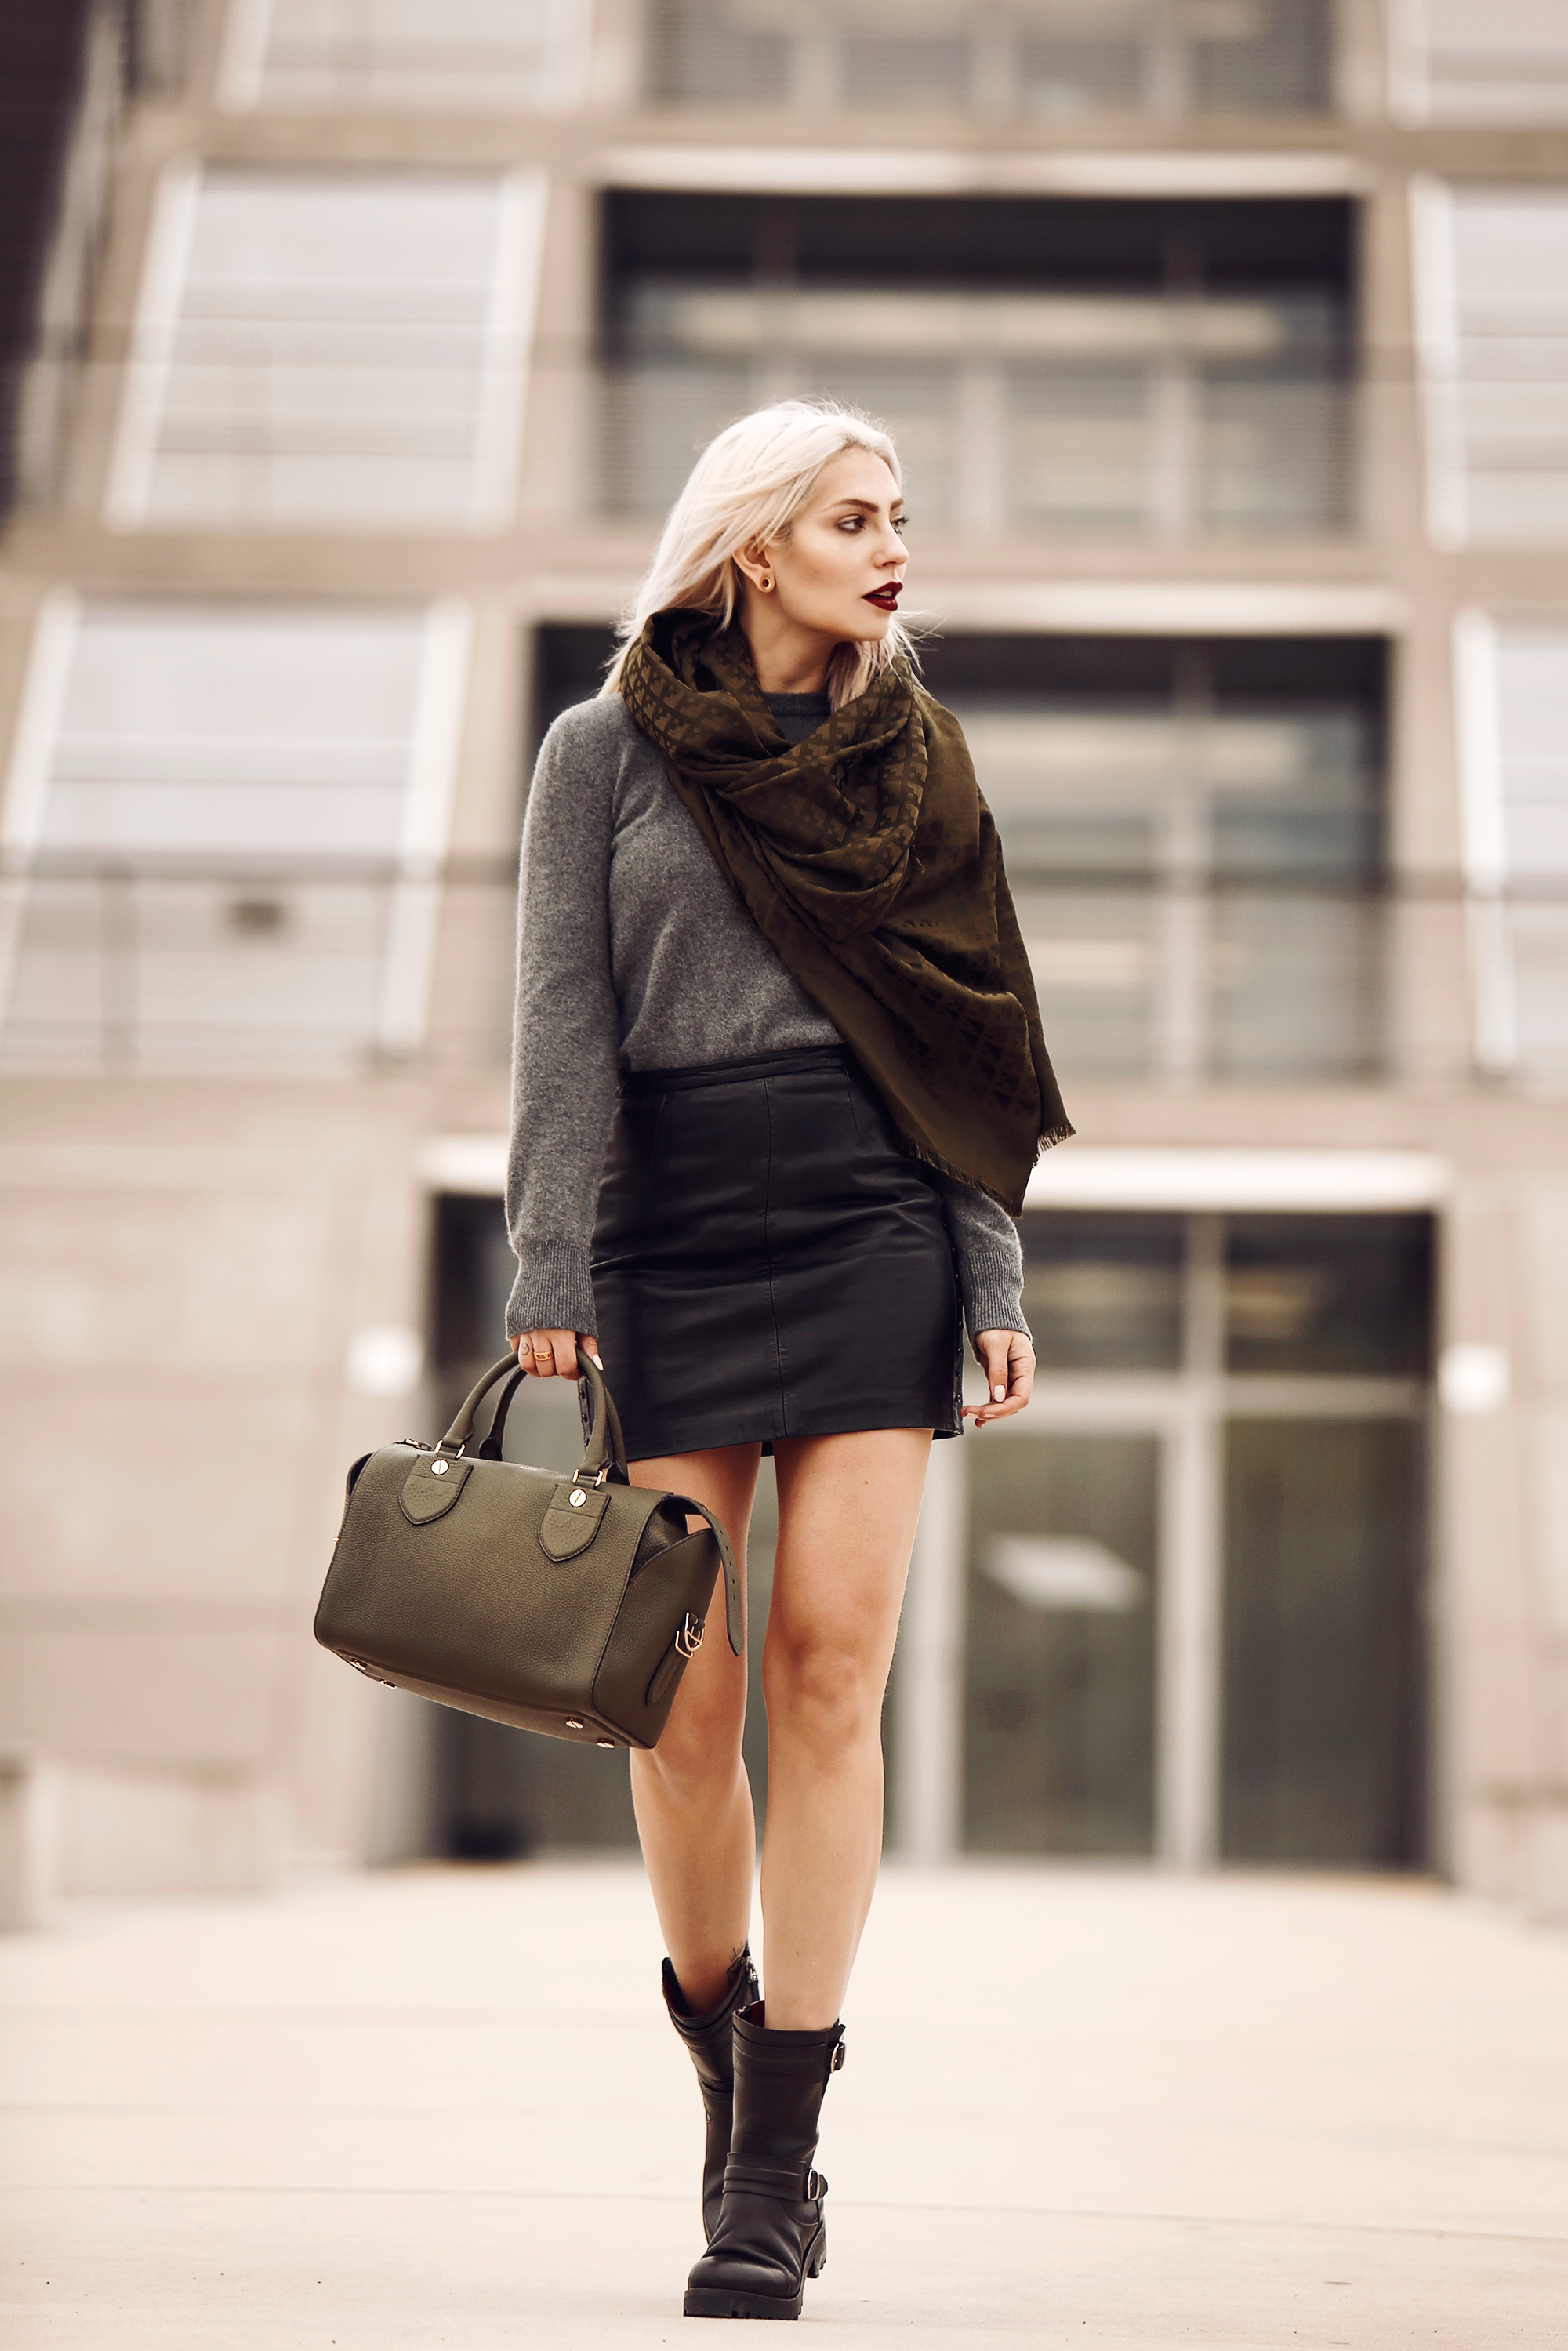 Outfit: true classics via Masha Sedgwick featuring Bally boots